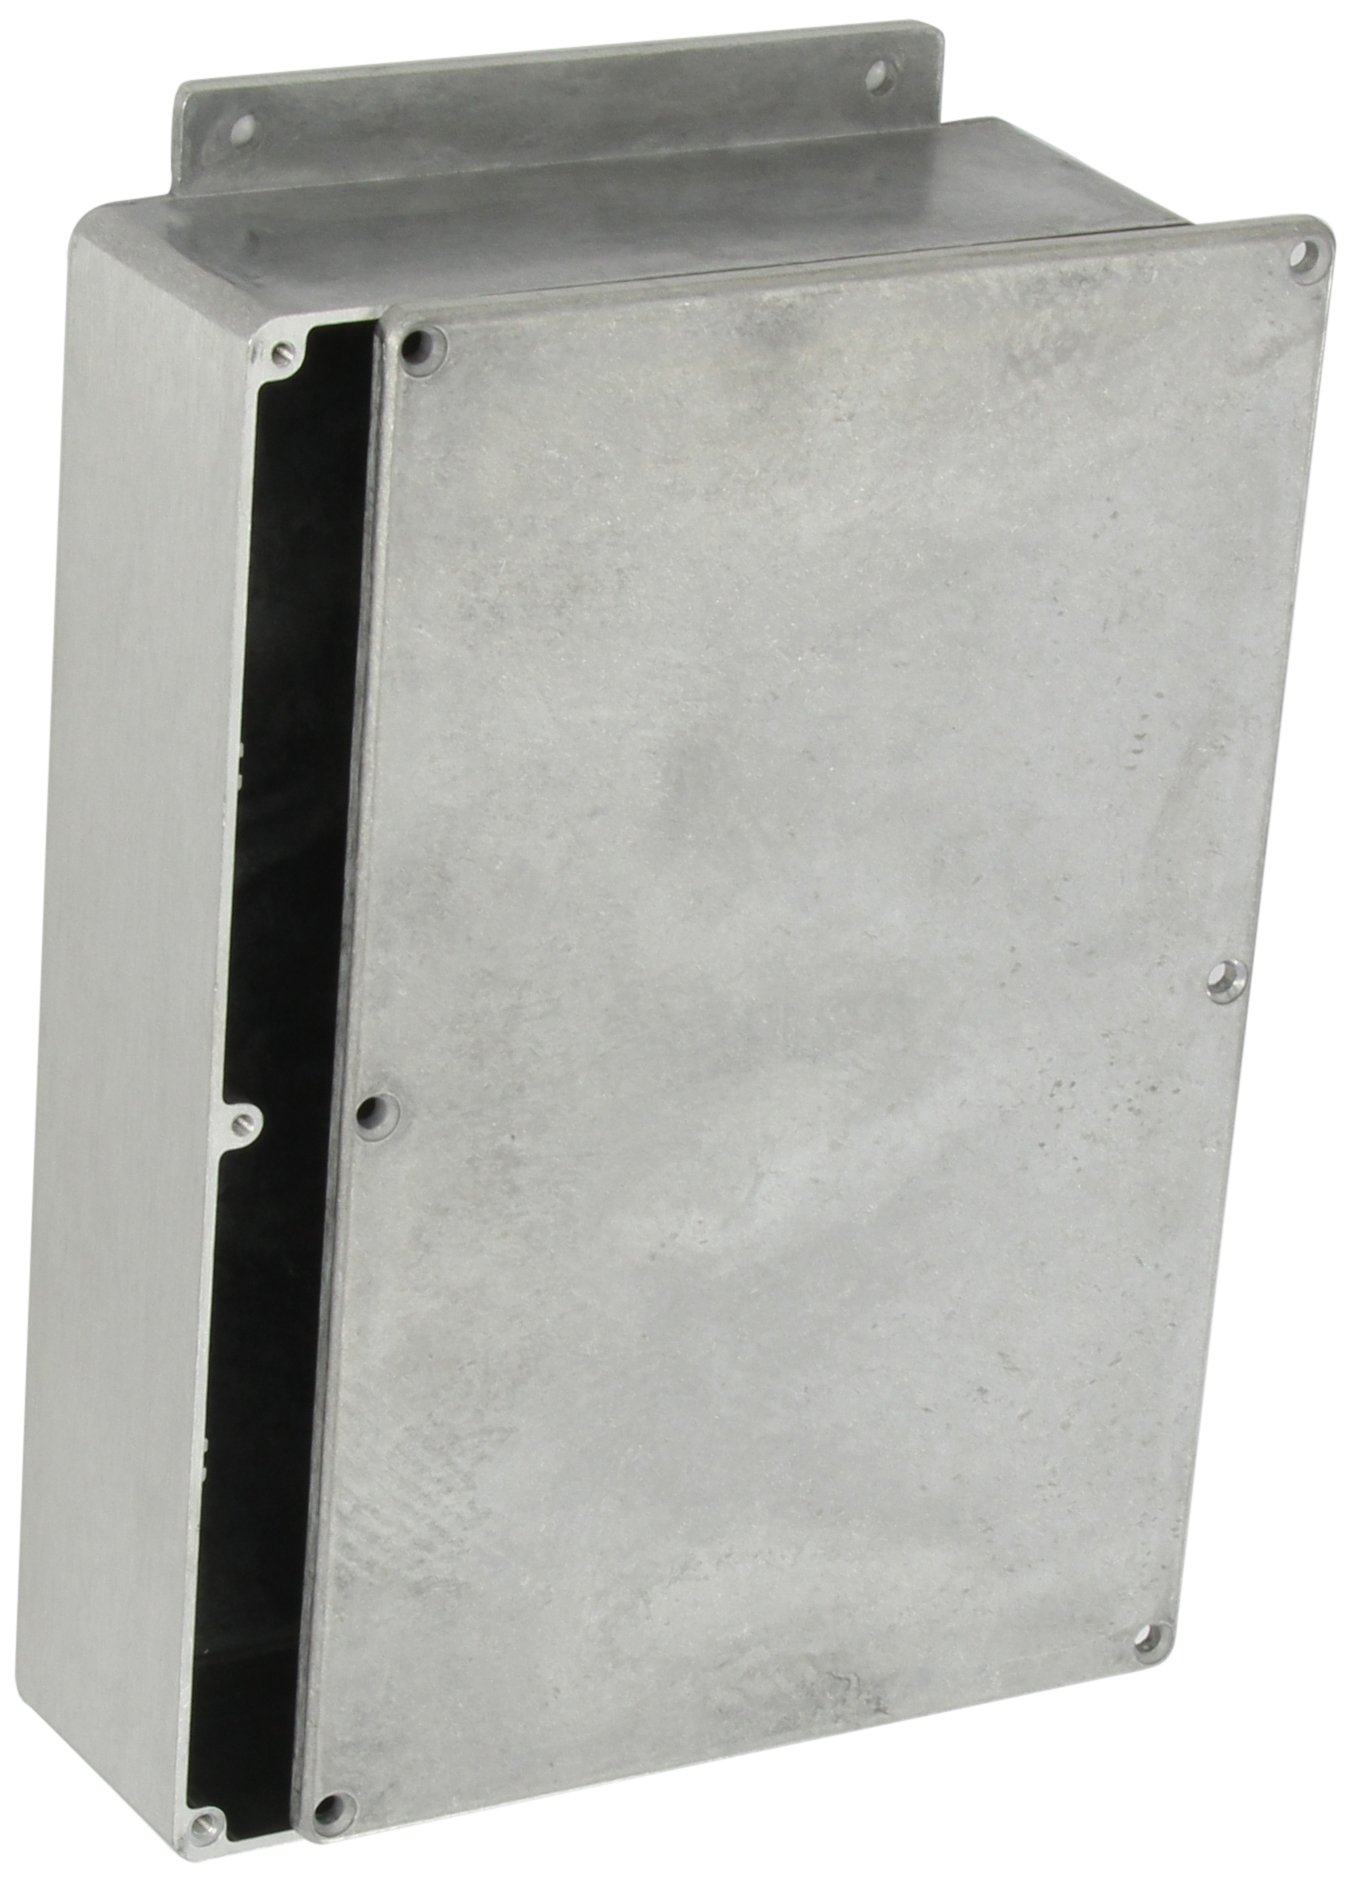 BUD Industries CN-6711 Die Cast Aluminum Enclosure with Mounting Bracket, 8-3/4'' Length x 5-47/64'' Width x 2-1/4'' Height, Natural Finish